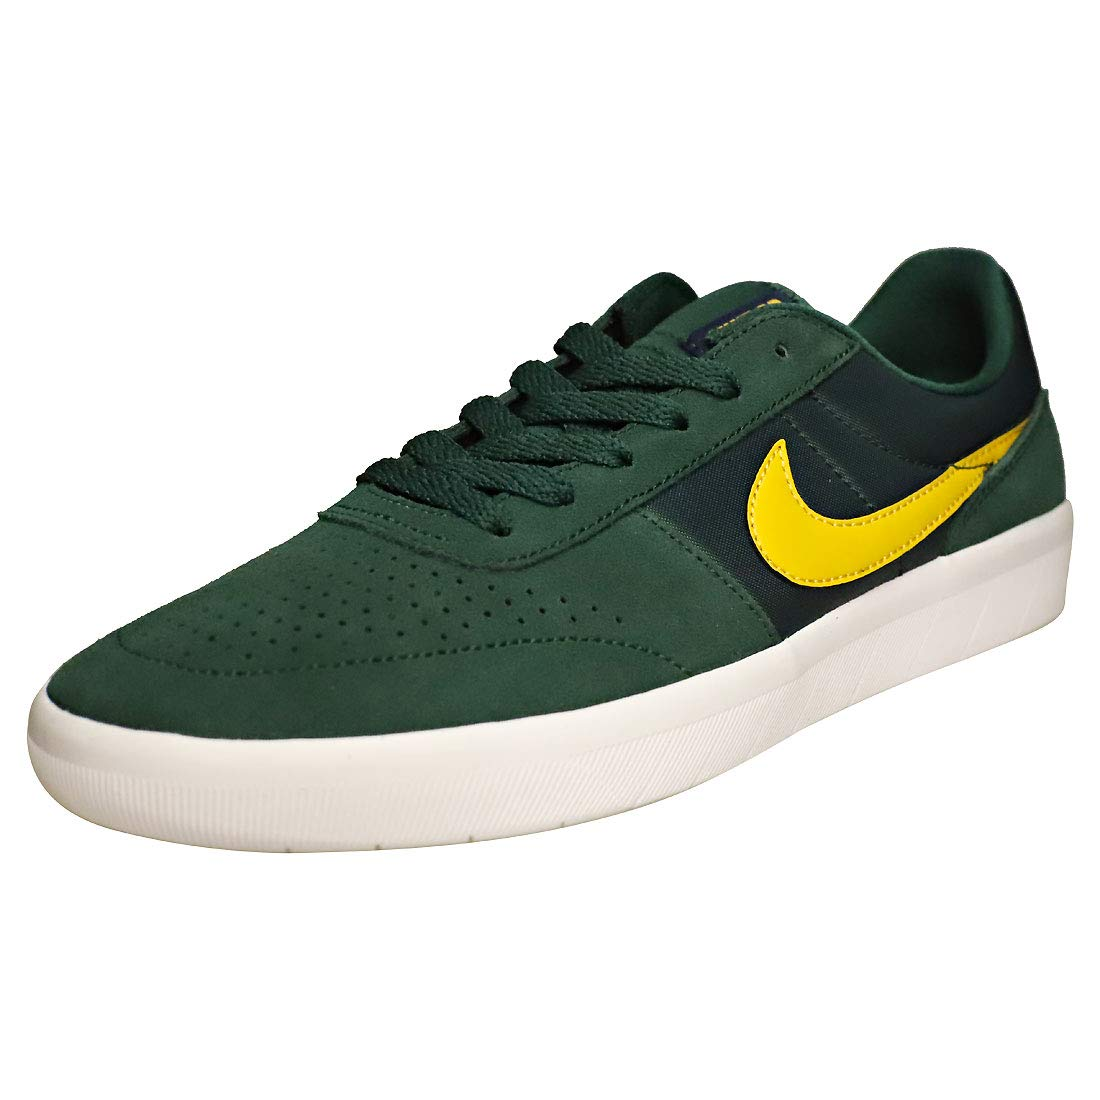 competitive price 19b47 1f25c Galleon - Nike SB Team Classic Skate Shoe (9.5 D(M) US, Midnight Green Yellow  Ochre)